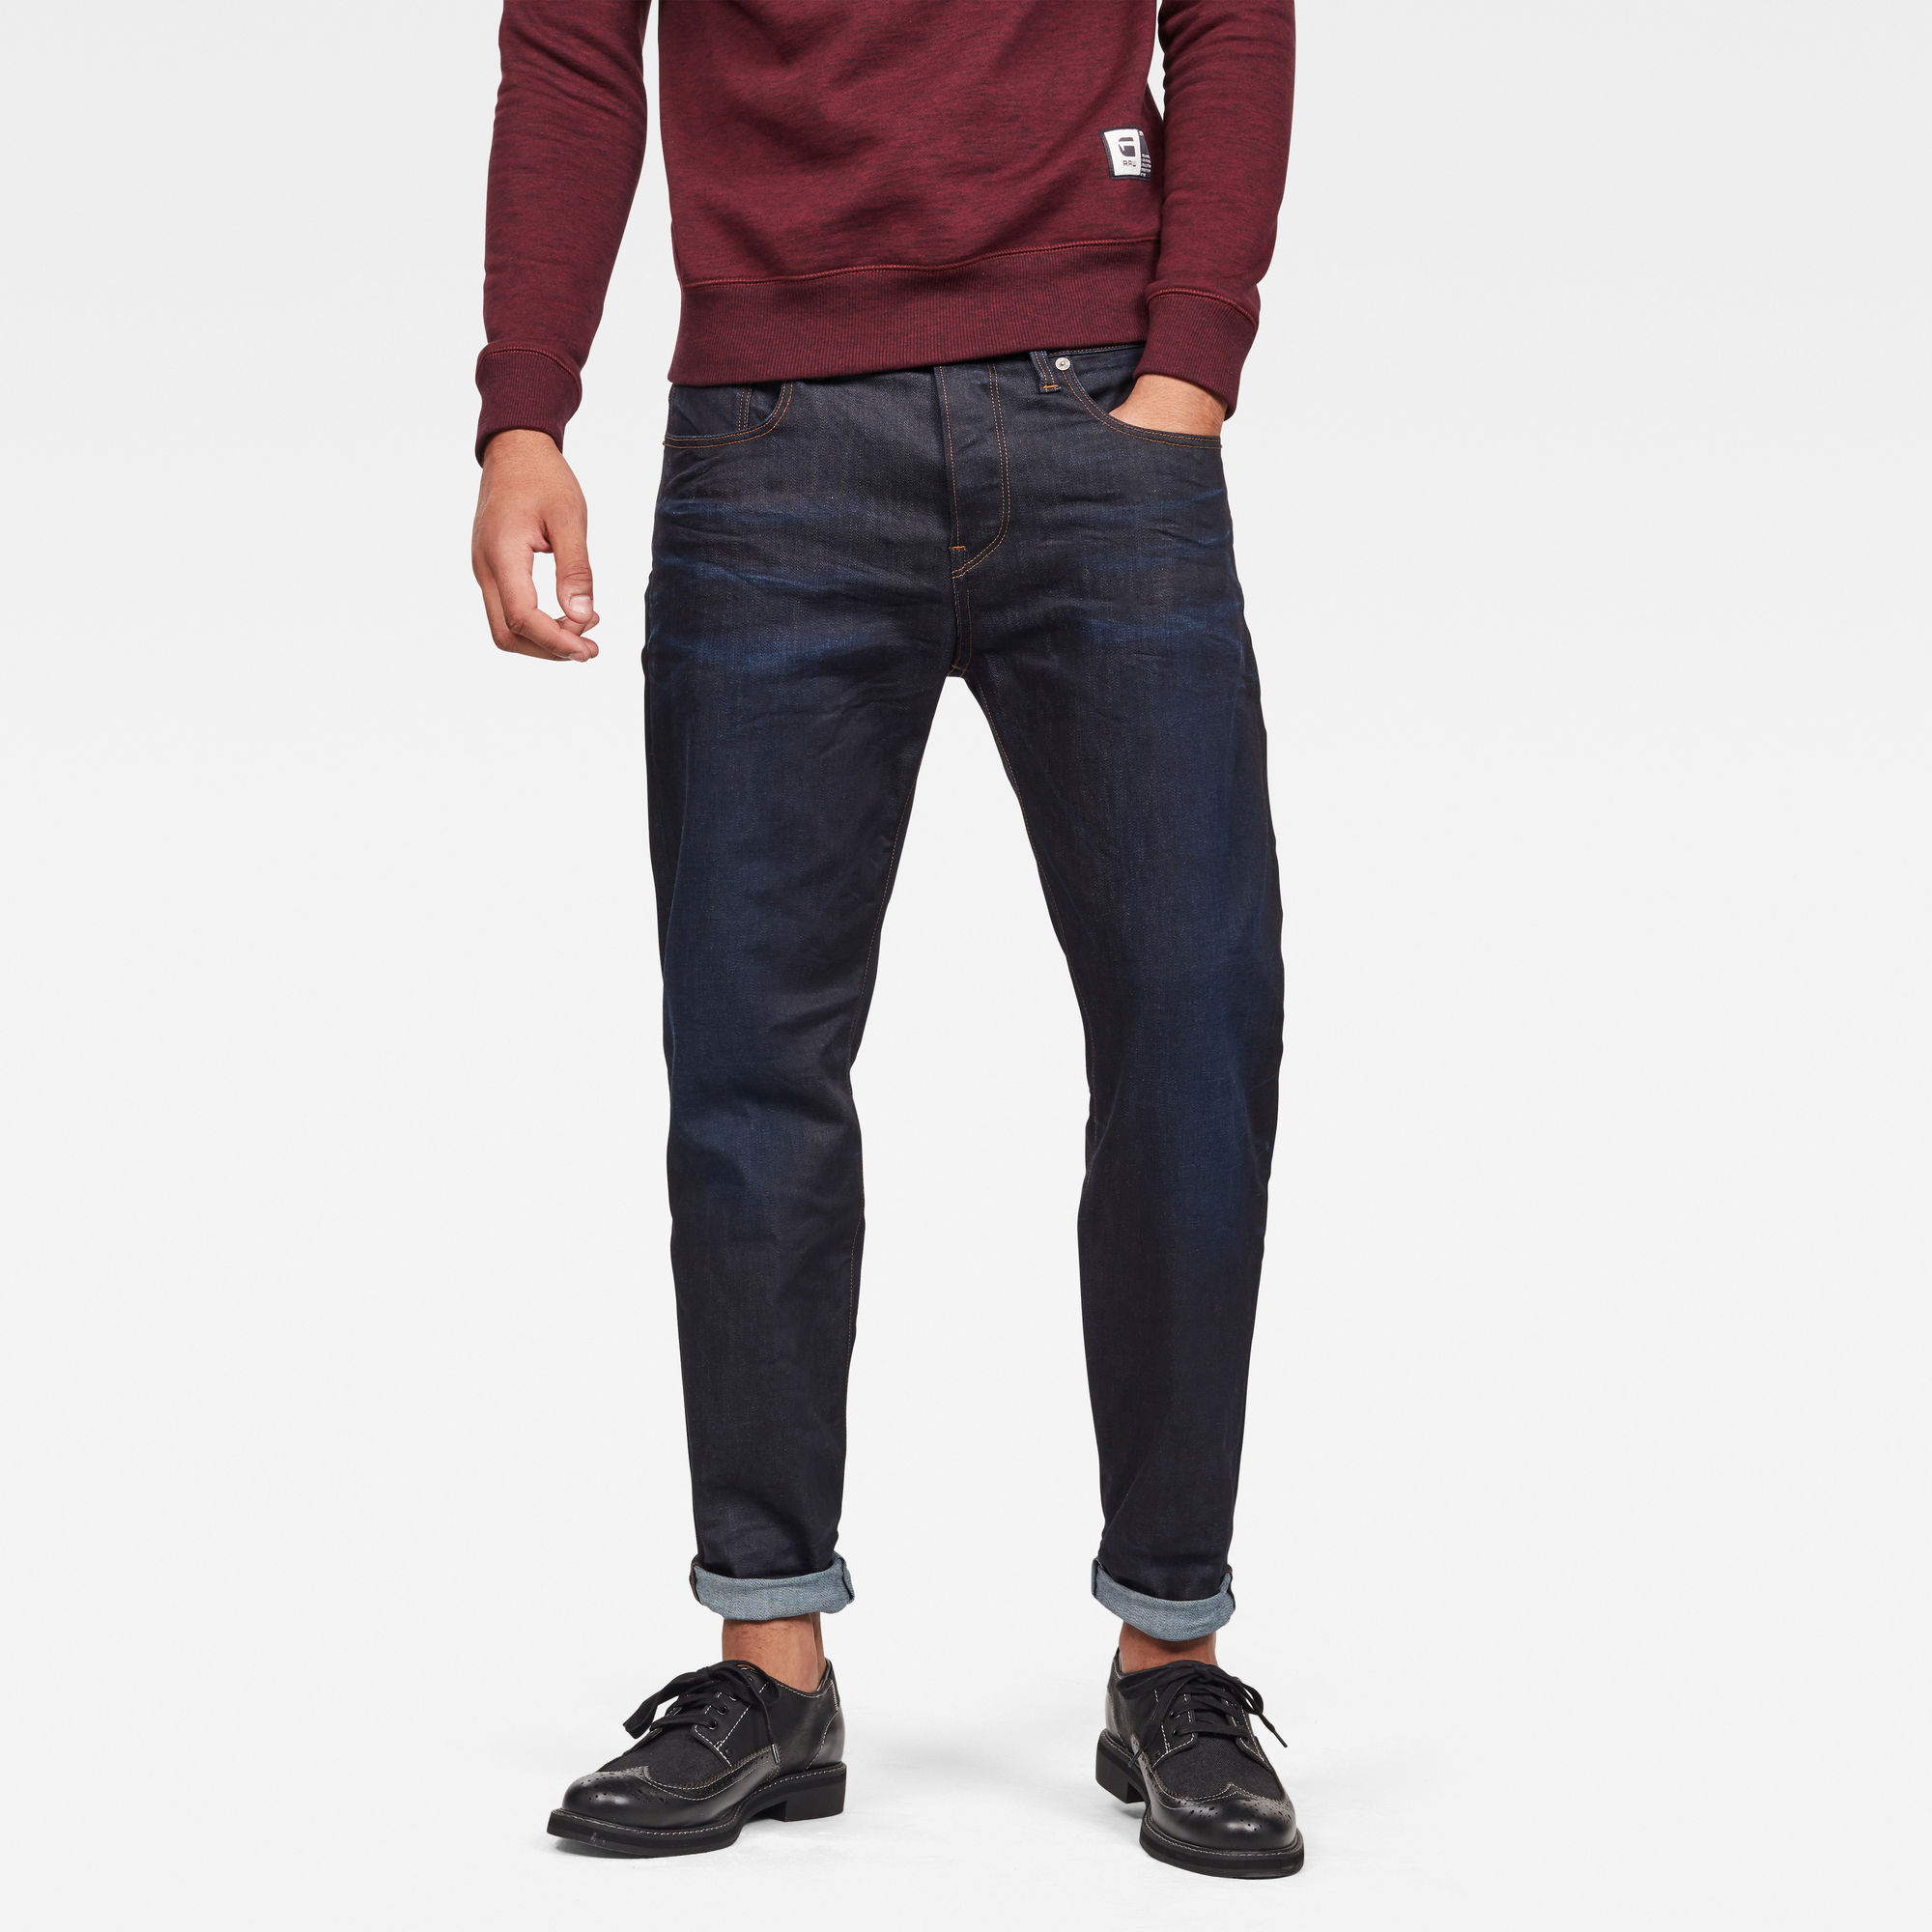 G-Star RAW Heren 3301 Relaxed Straight Jeans Donkerblauw